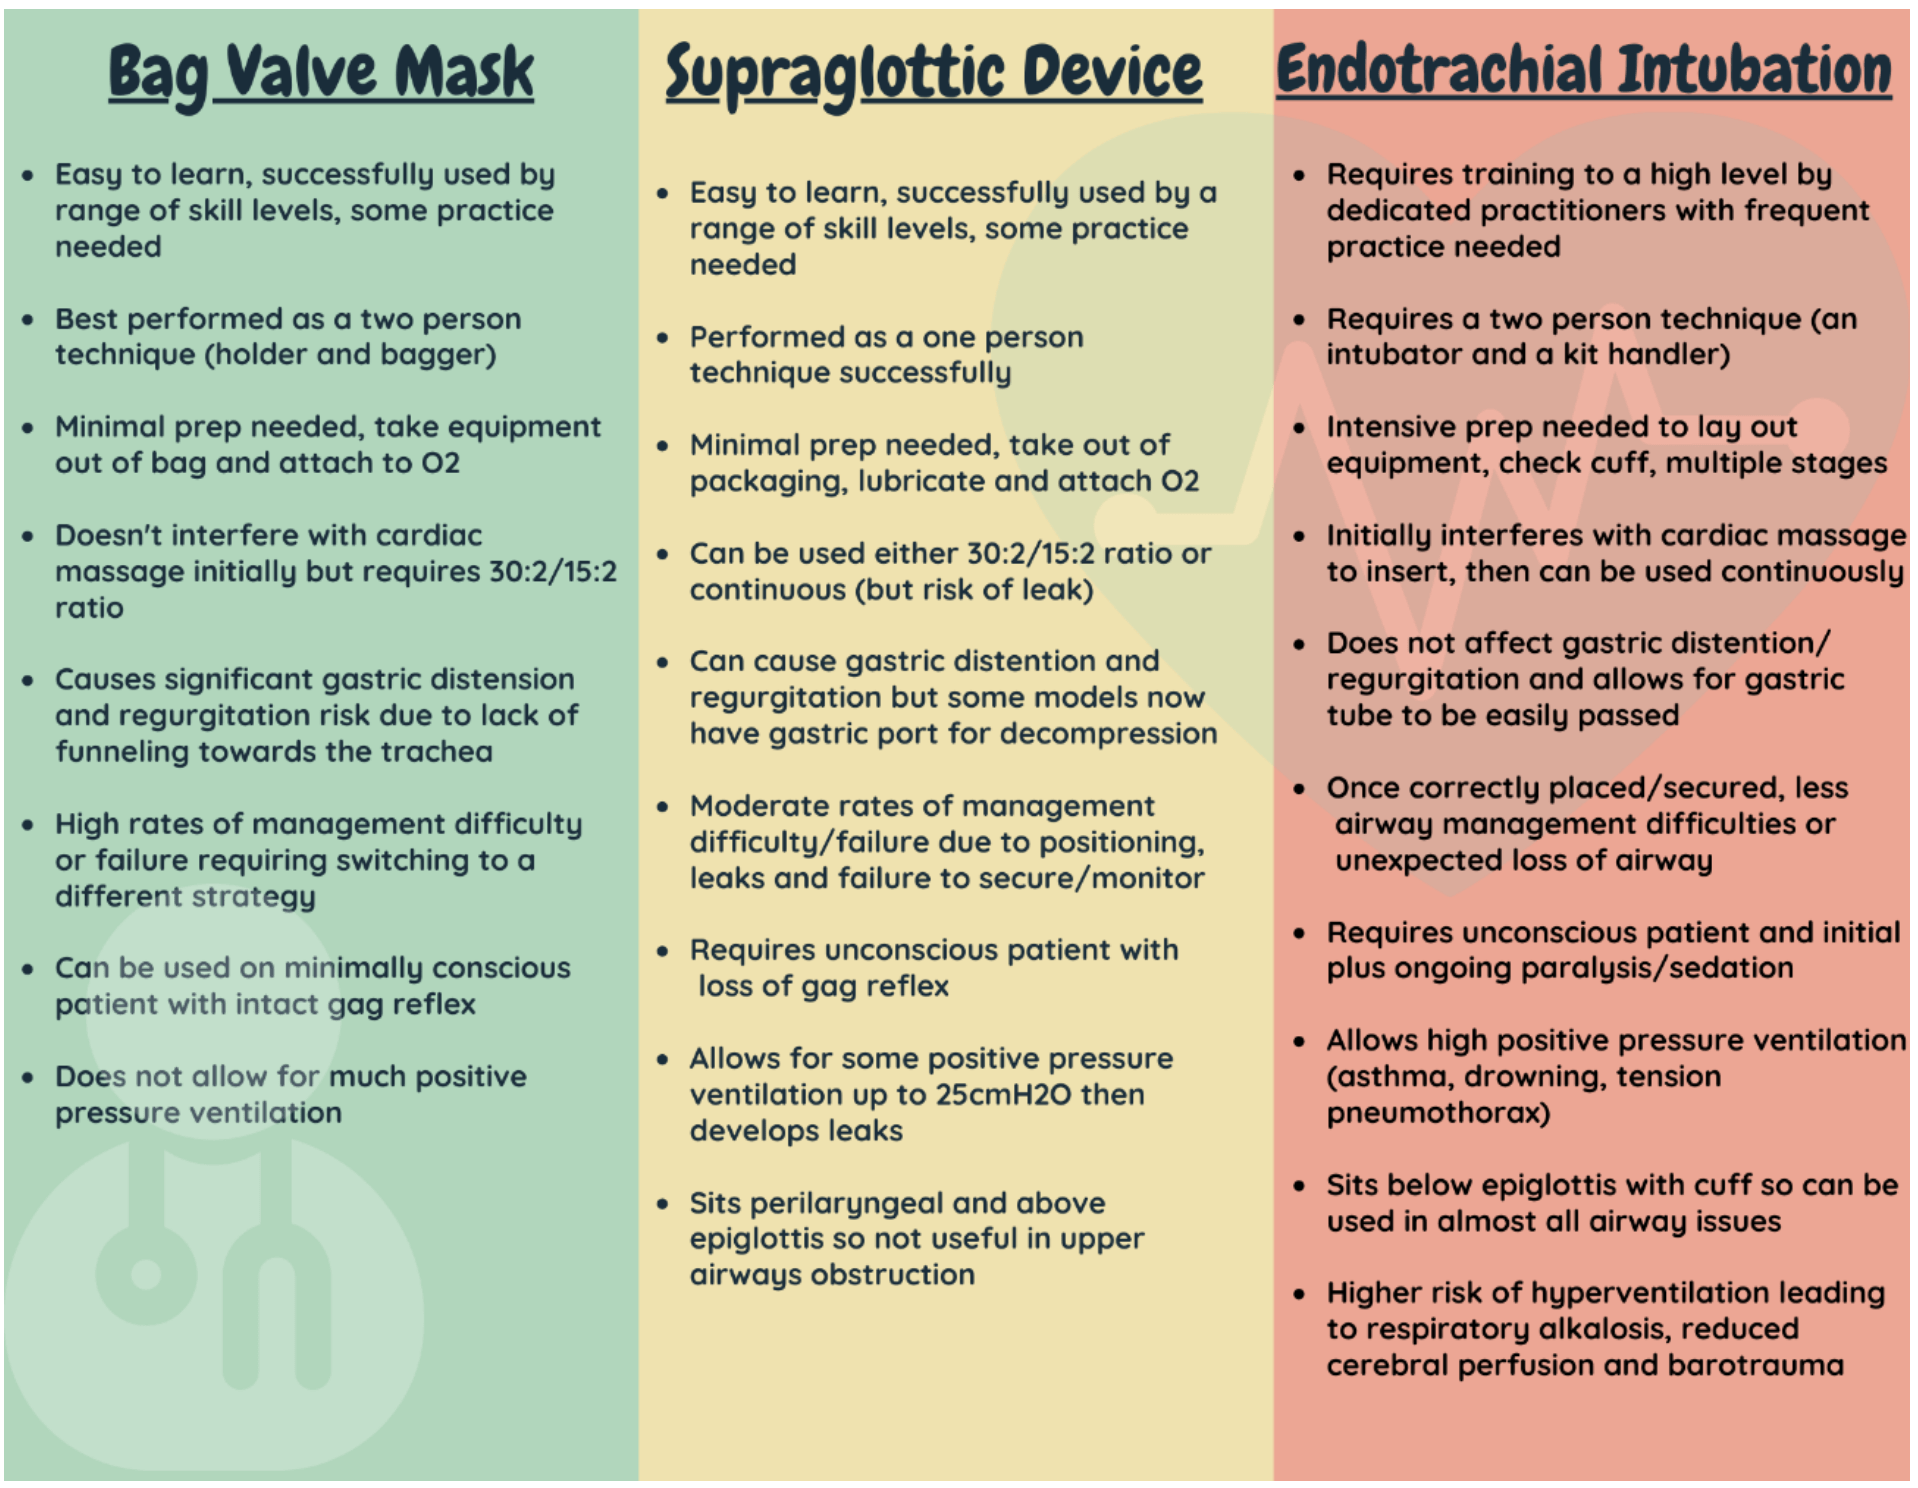 Table showing advantages and challenges of bag-valve mask compared to supraglottic airway devices